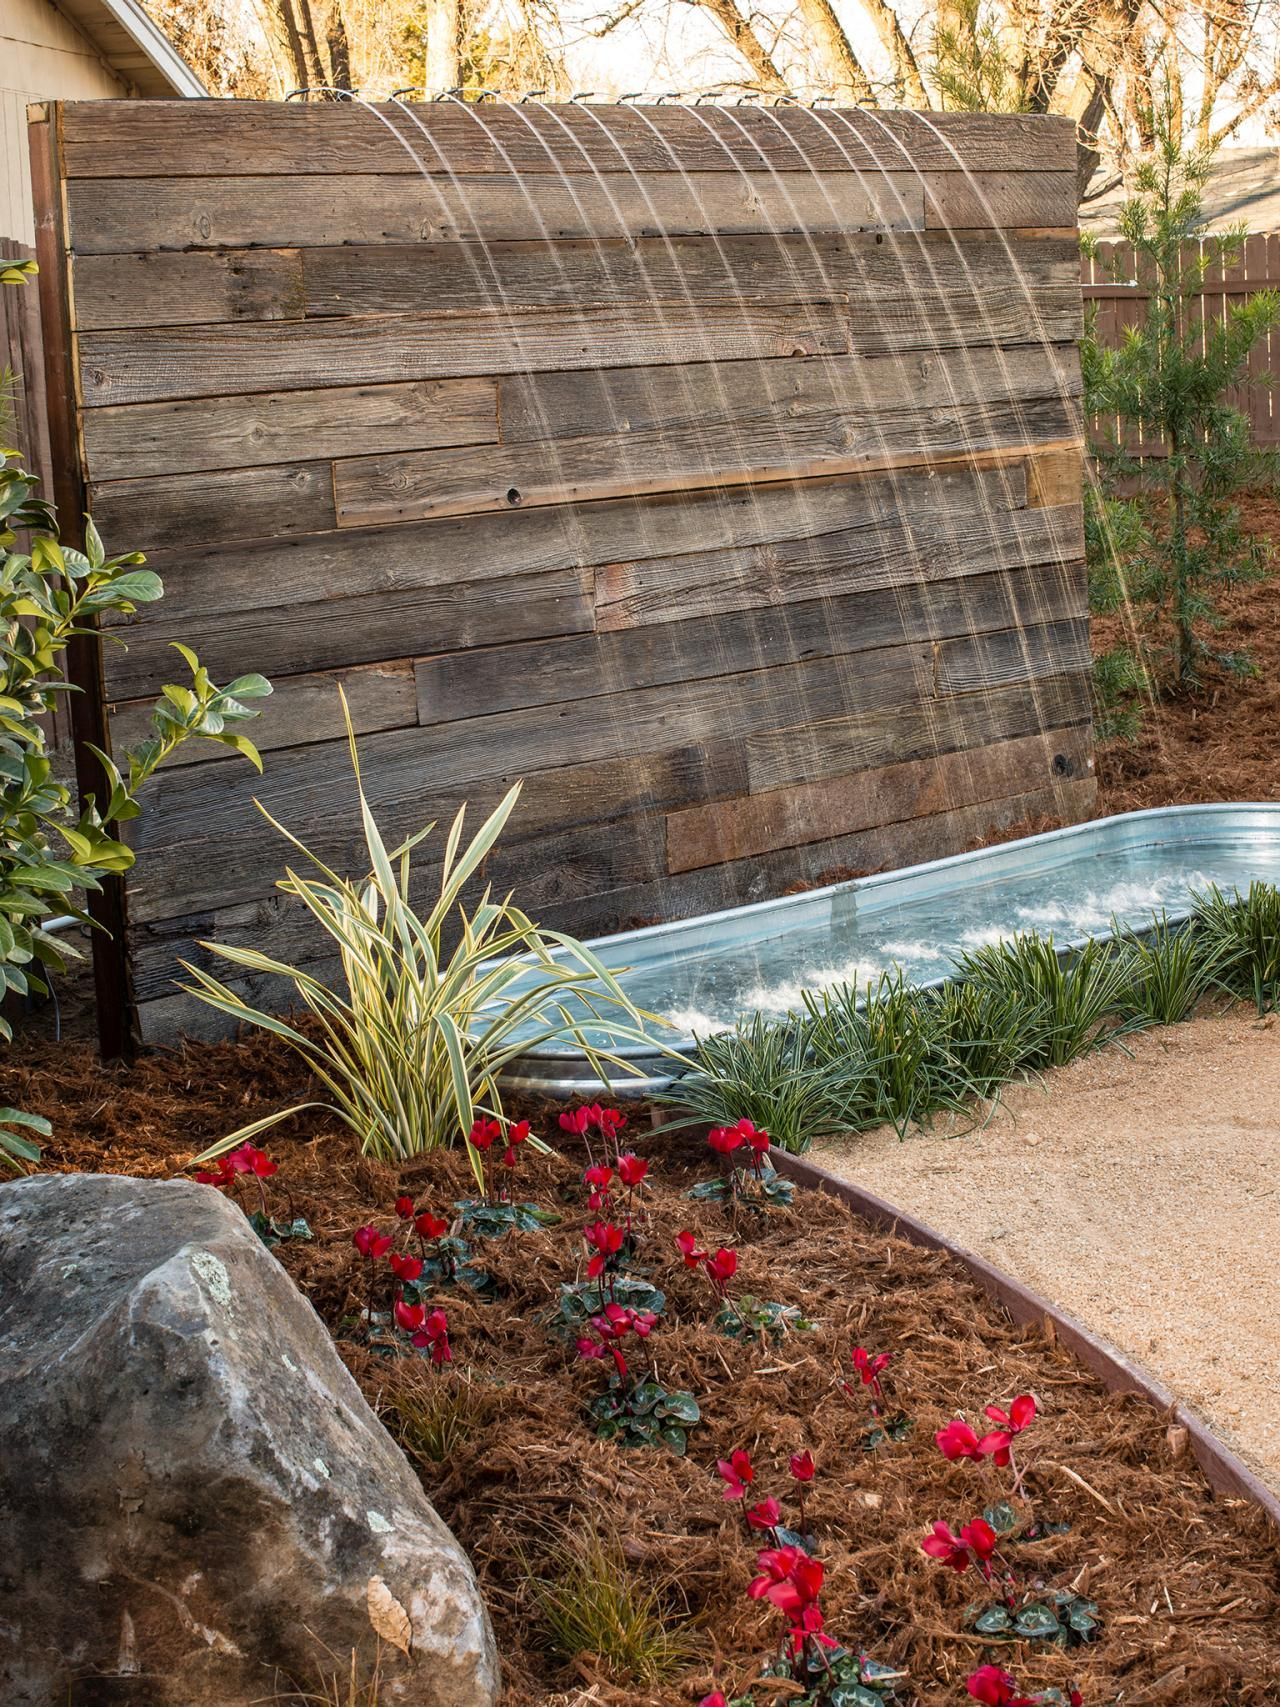 Water feature using reclaimed wood galvanized water trough